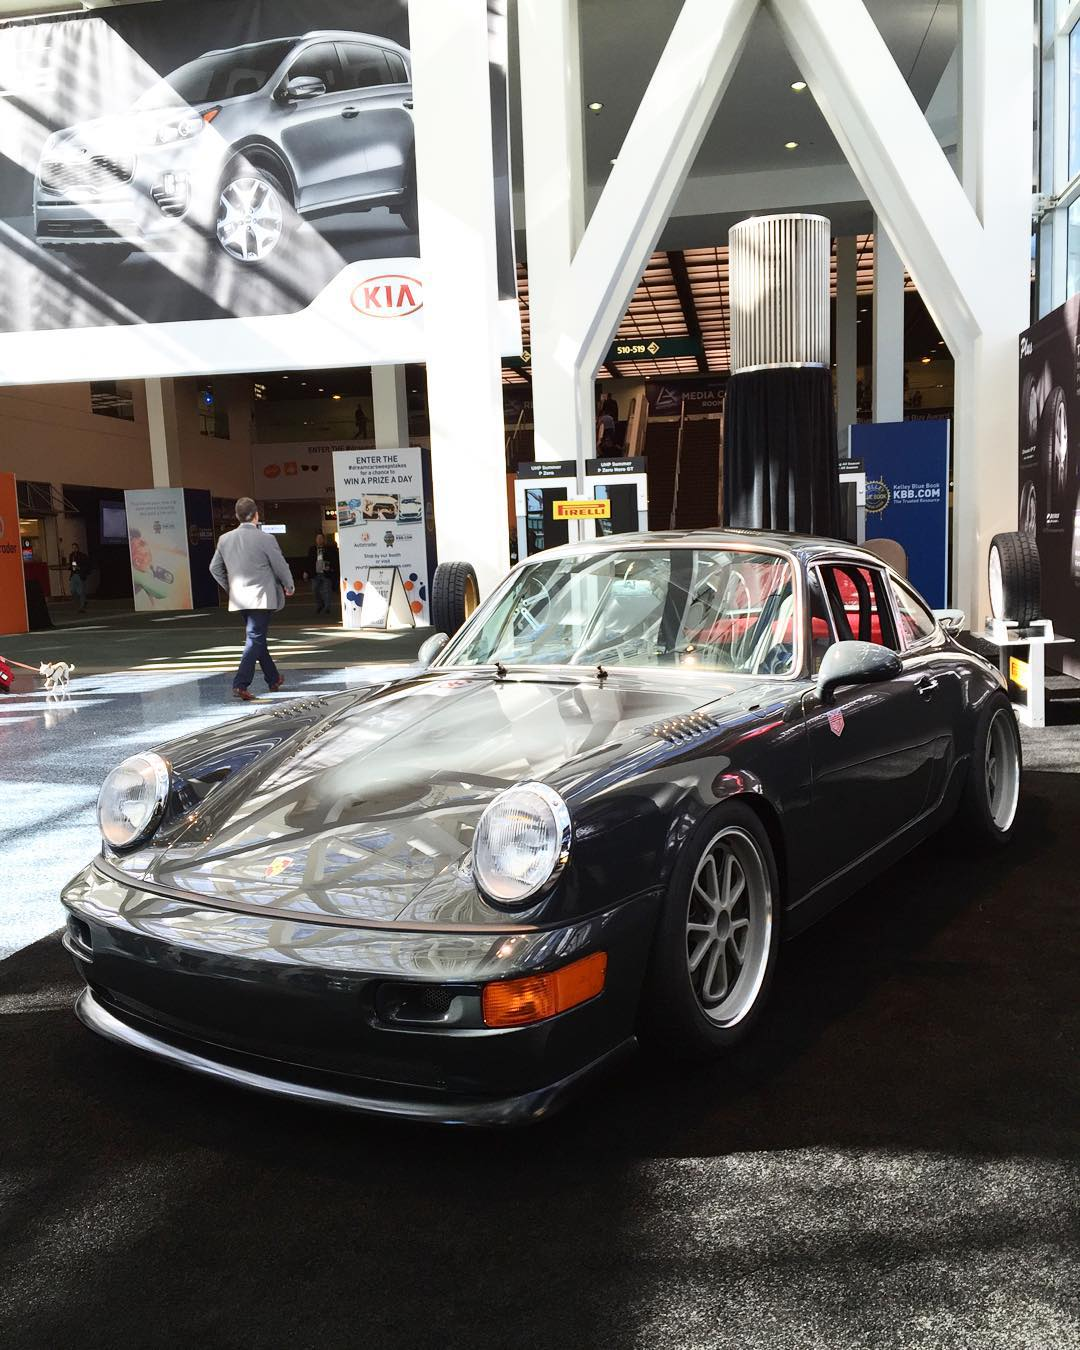 Quick stop at the LA Auto Show to see what all the fuss is about, first thing we see is @magnuswalker new 964.